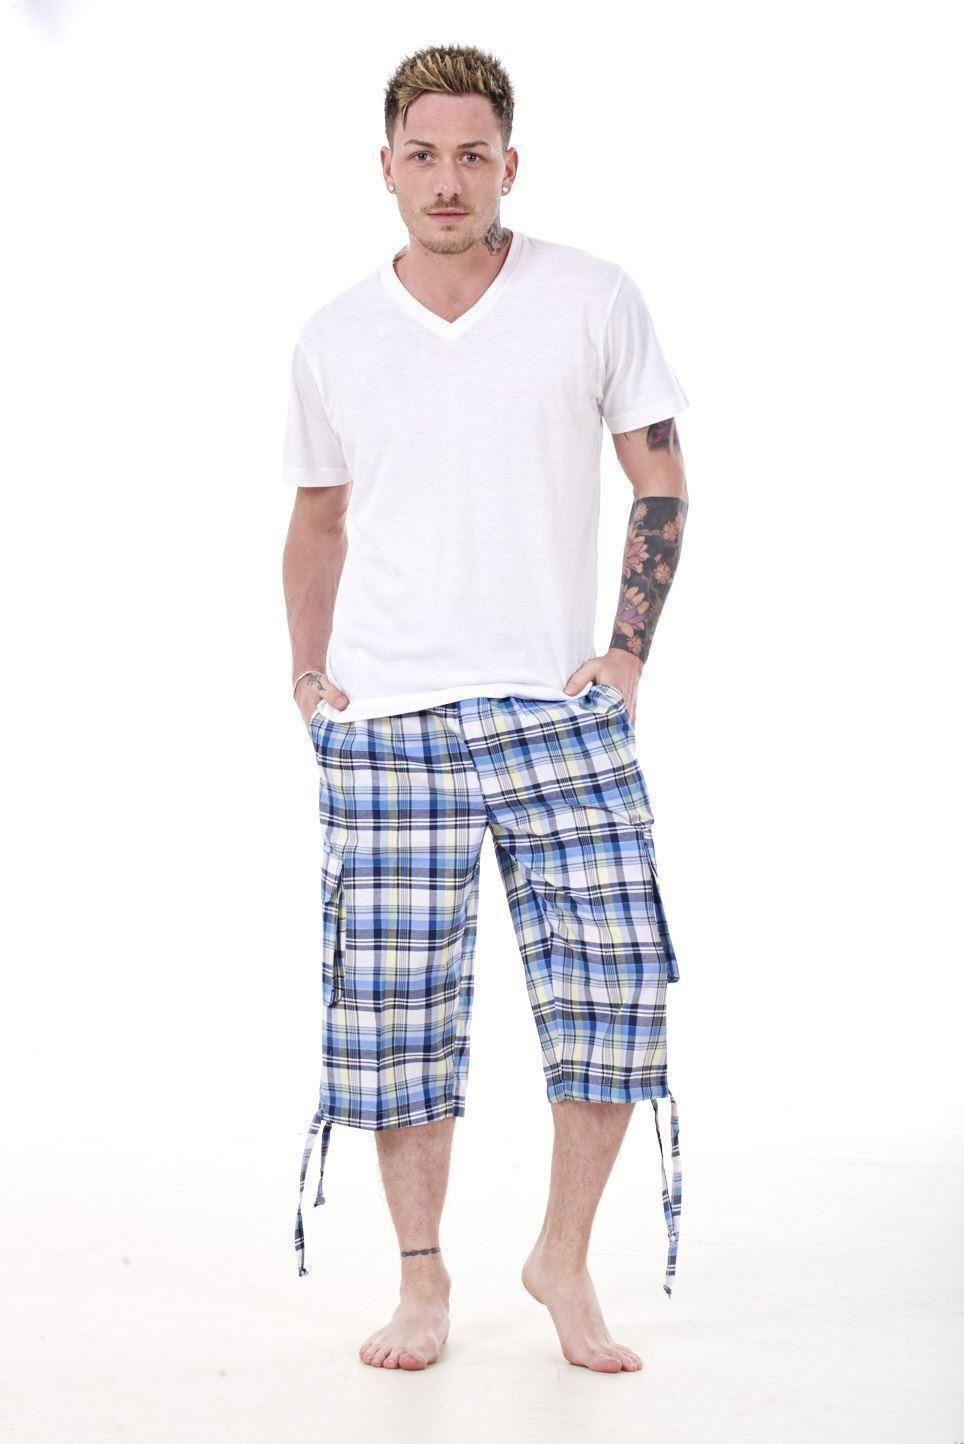 Mens-Check-Shorts-3-4-Length-by-Malay-Apparel-Cotton-Blend-Lounge-Casual-Wear thumbnail 33